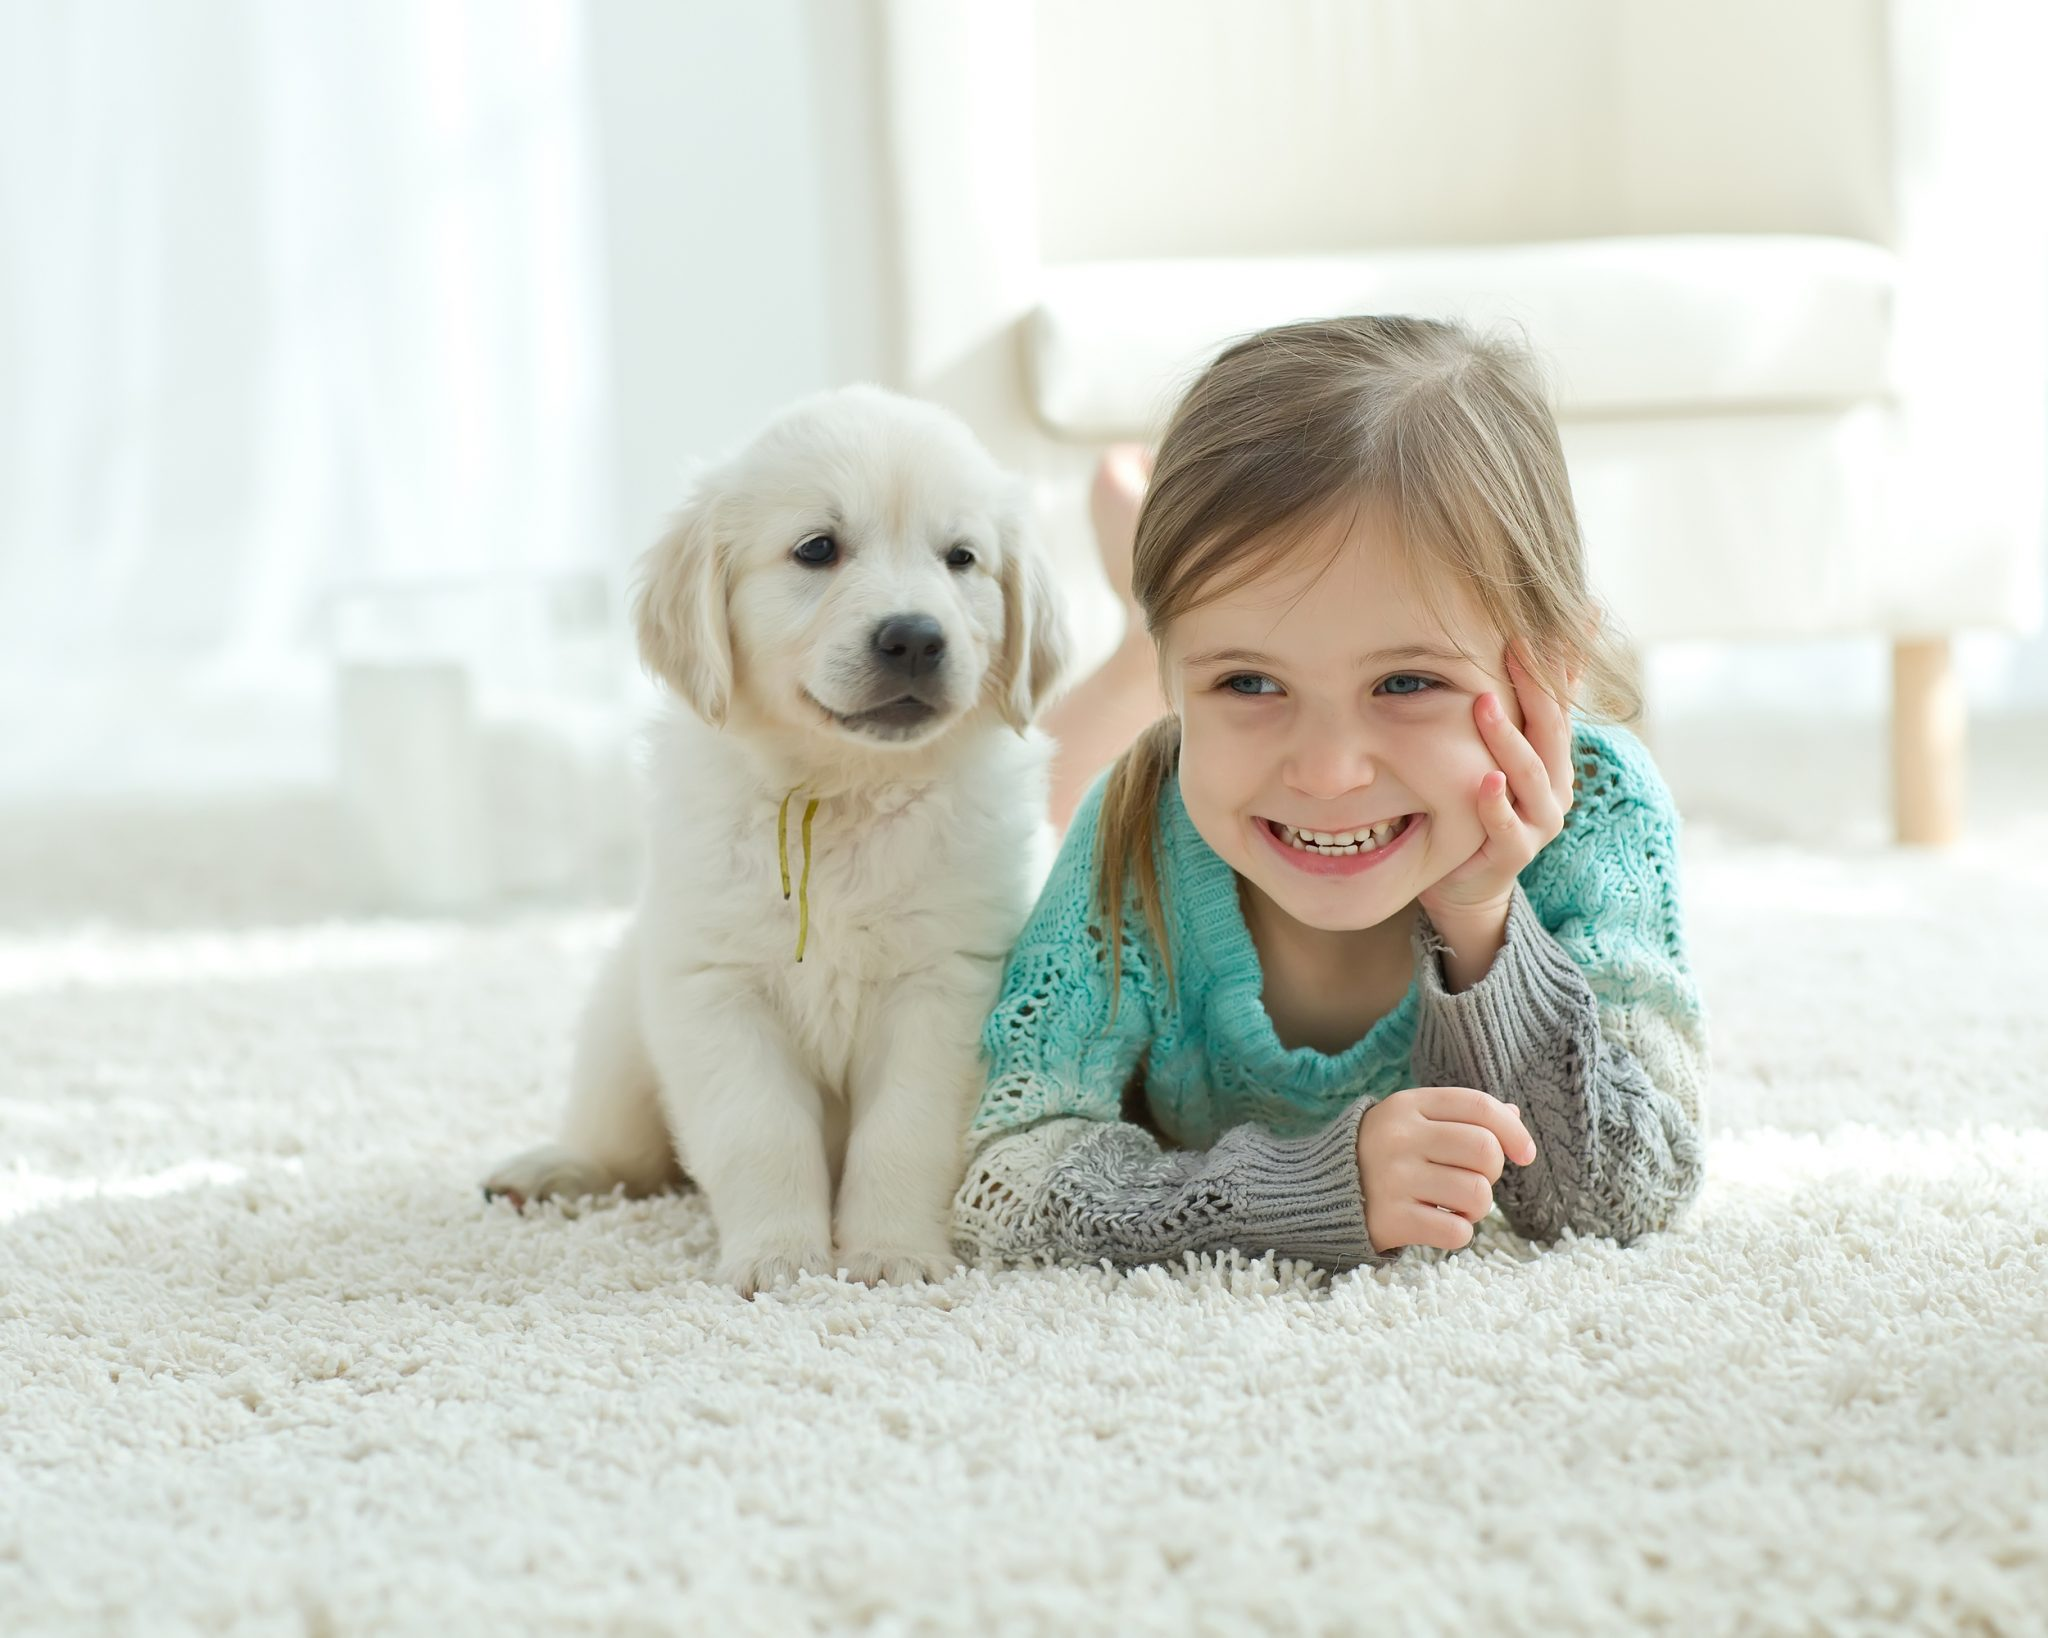 How to Remove Urine Odor from Carpet